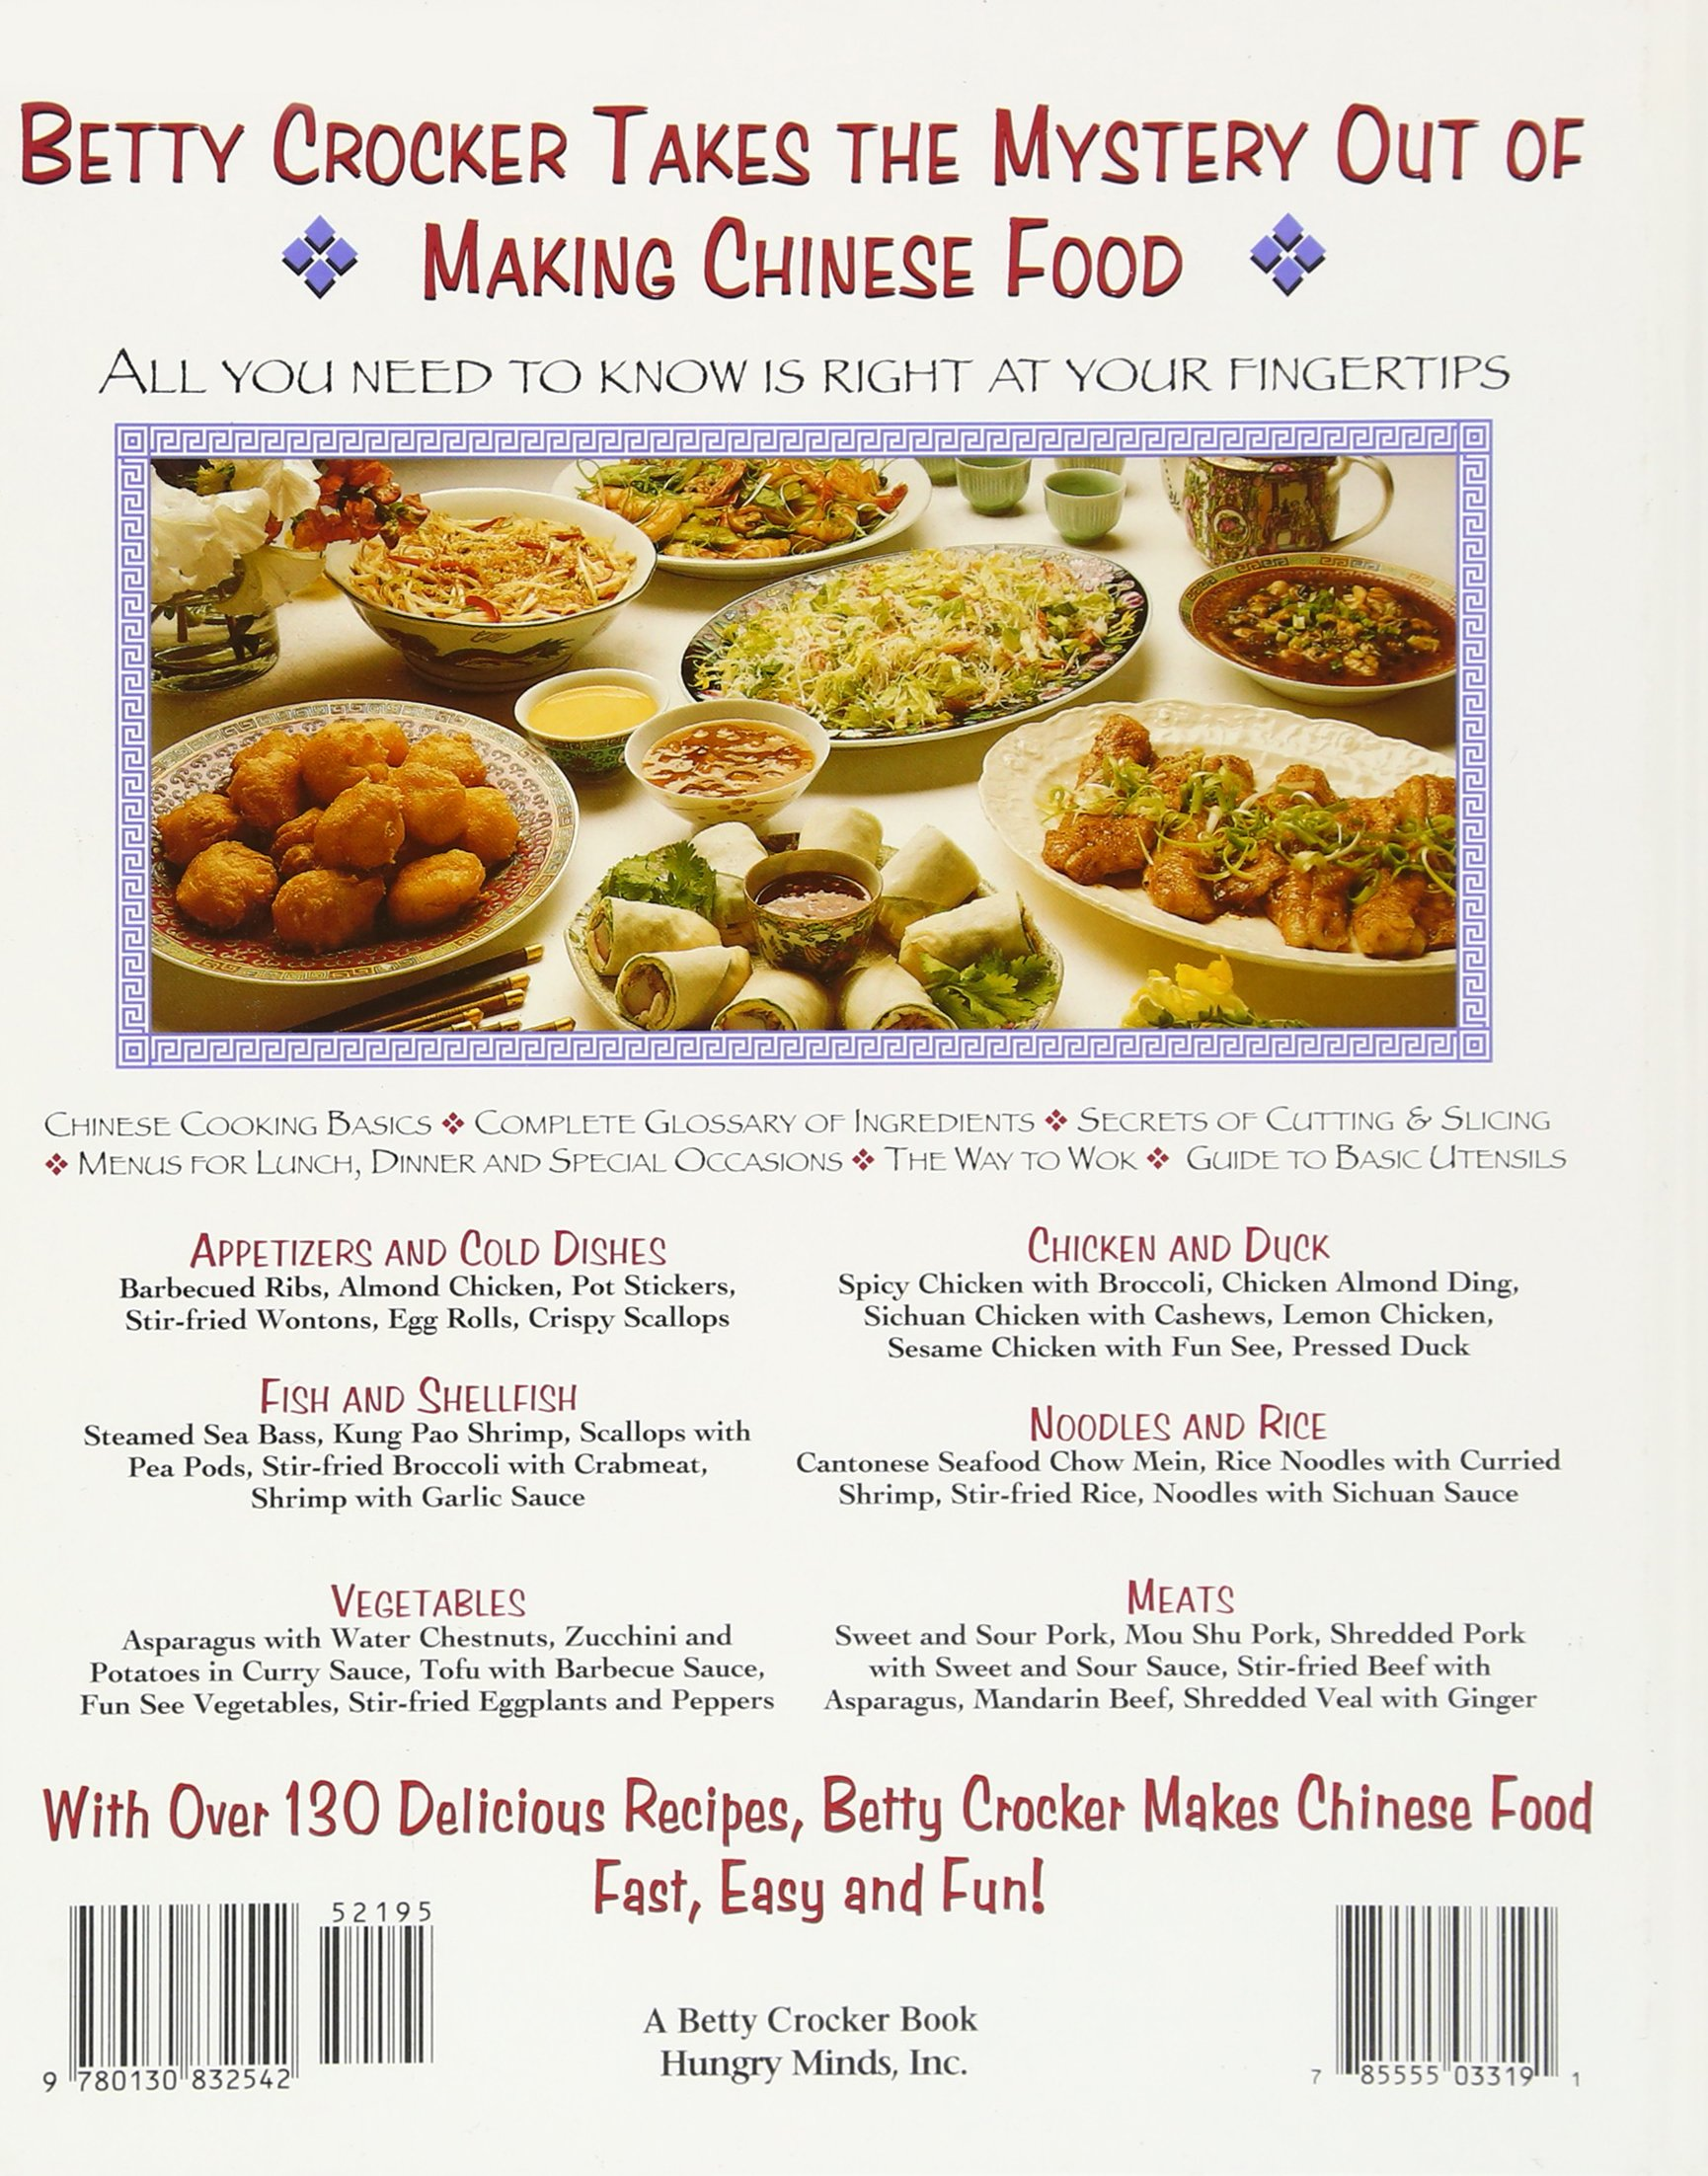 Betty crockers new chinese cookbook recipes by leeann chin betty crockers new chinese cookbook recipes by leeann chin betty crocker 0785555033191 amazon books forumfinder Choice Image